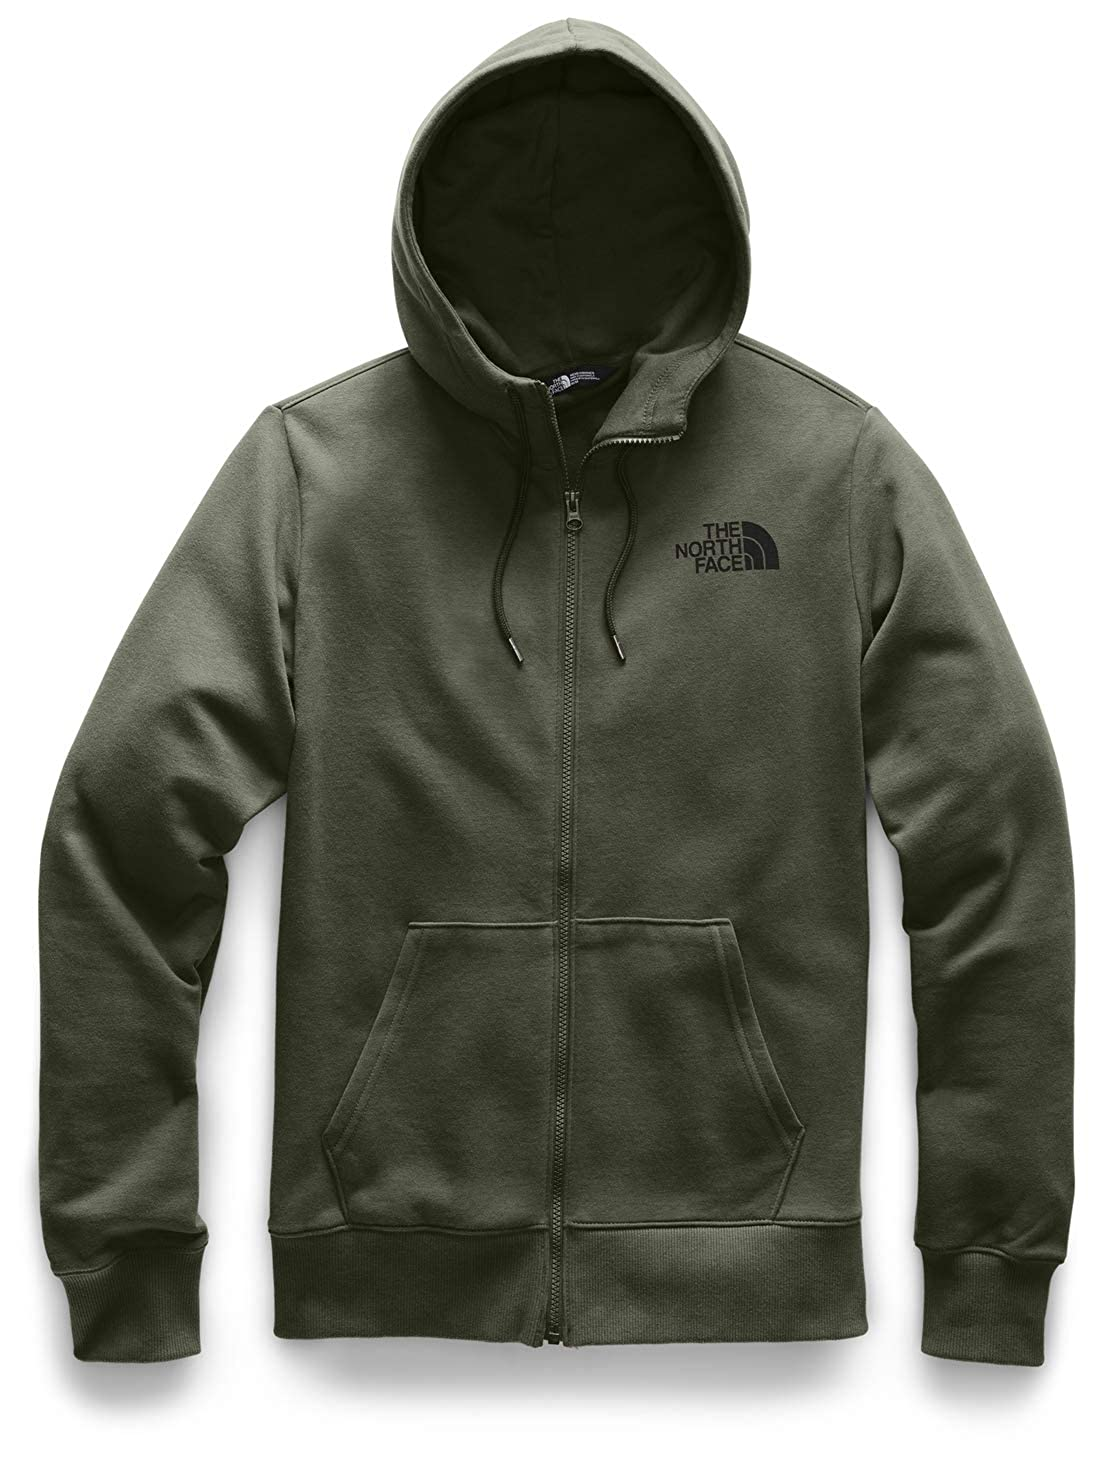 The North Face Mens Half Dome Full Zip Hoodie